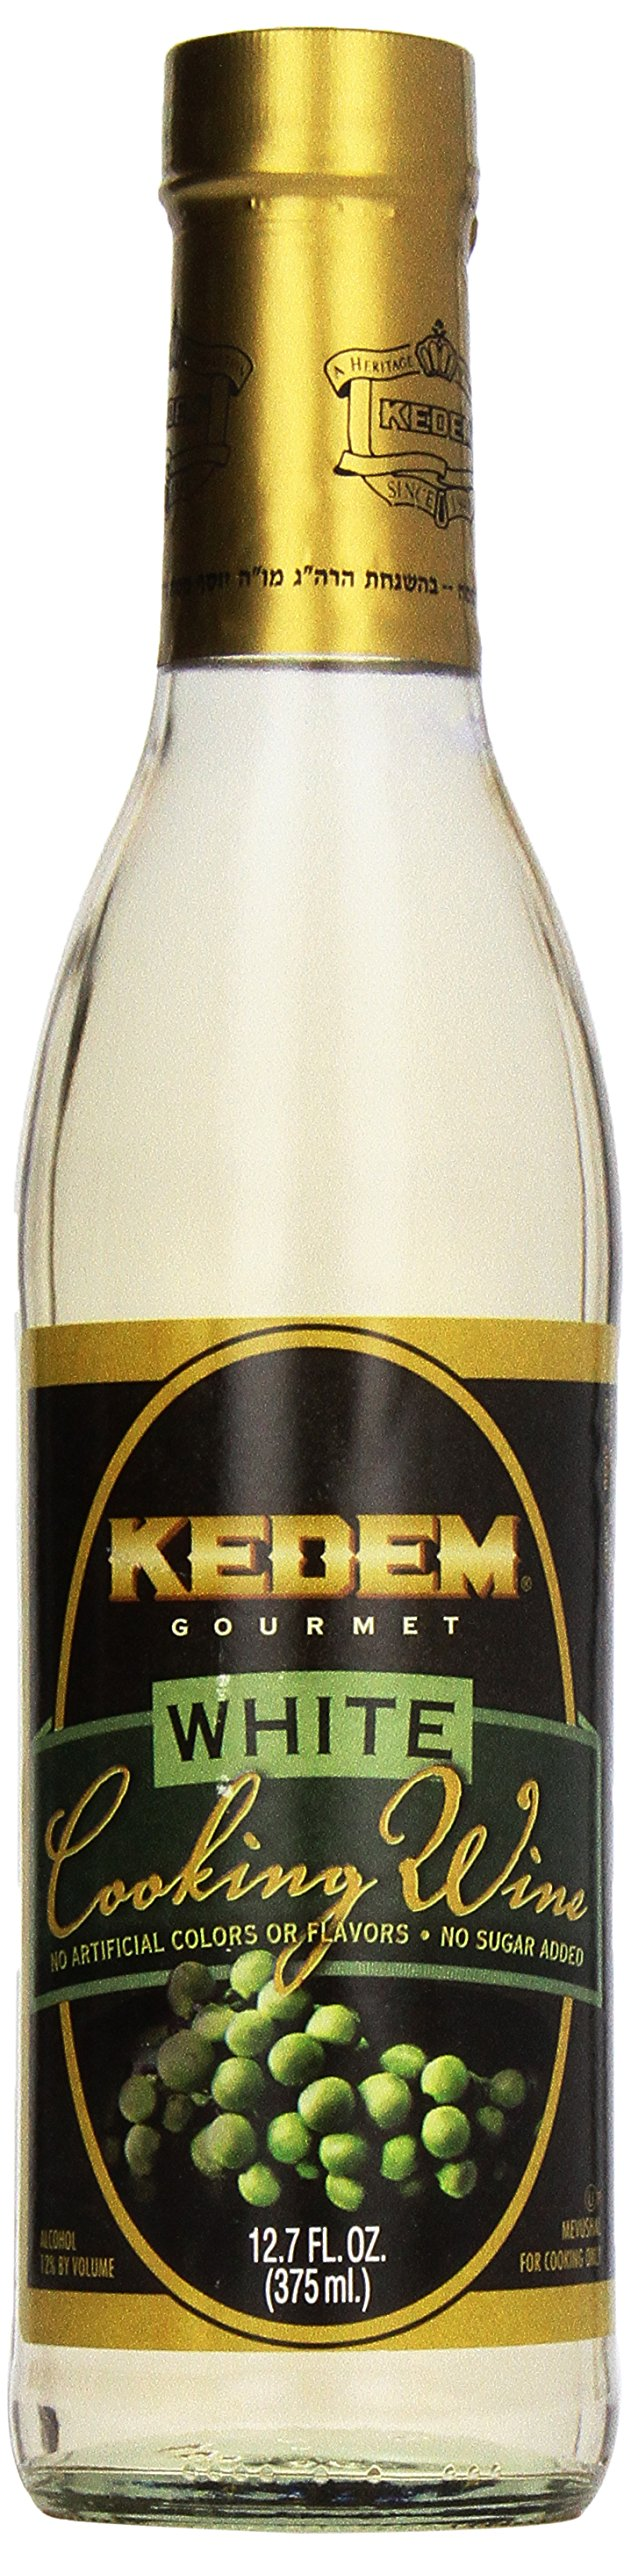 Kedem White Cooking Wine, 12.7 oz